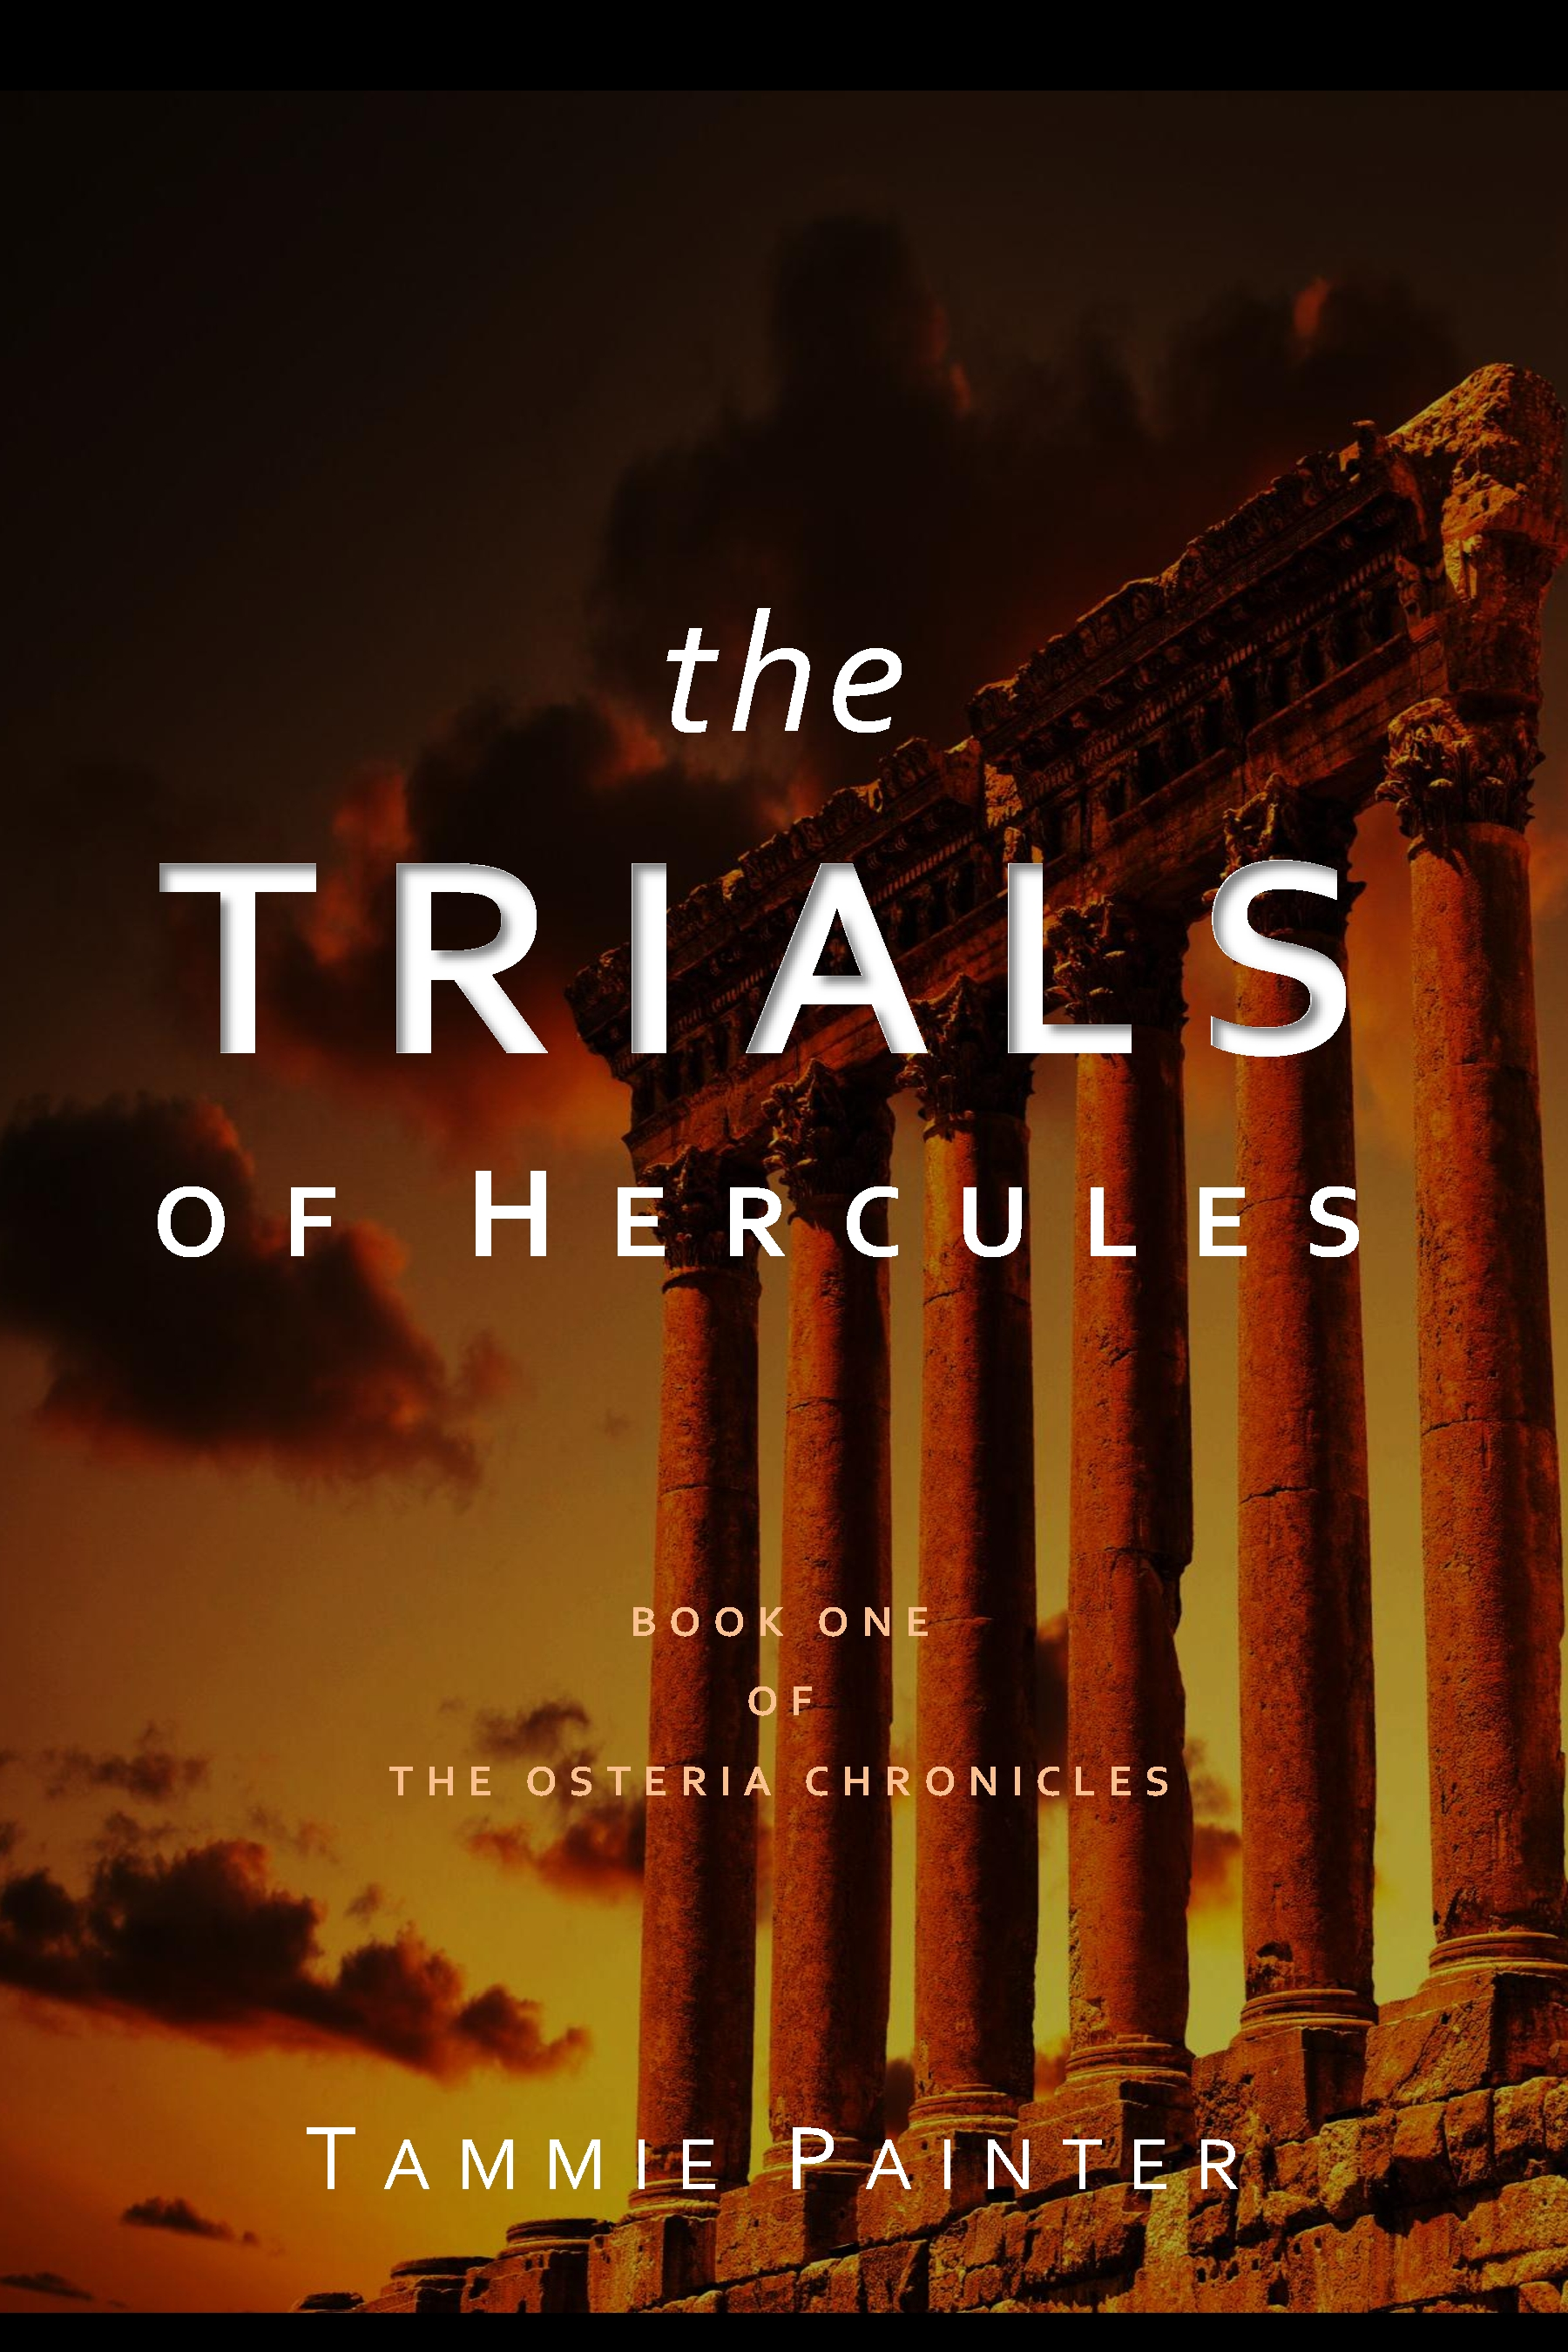 Reader S Choice Review The Trials Of Hercules By Tammie